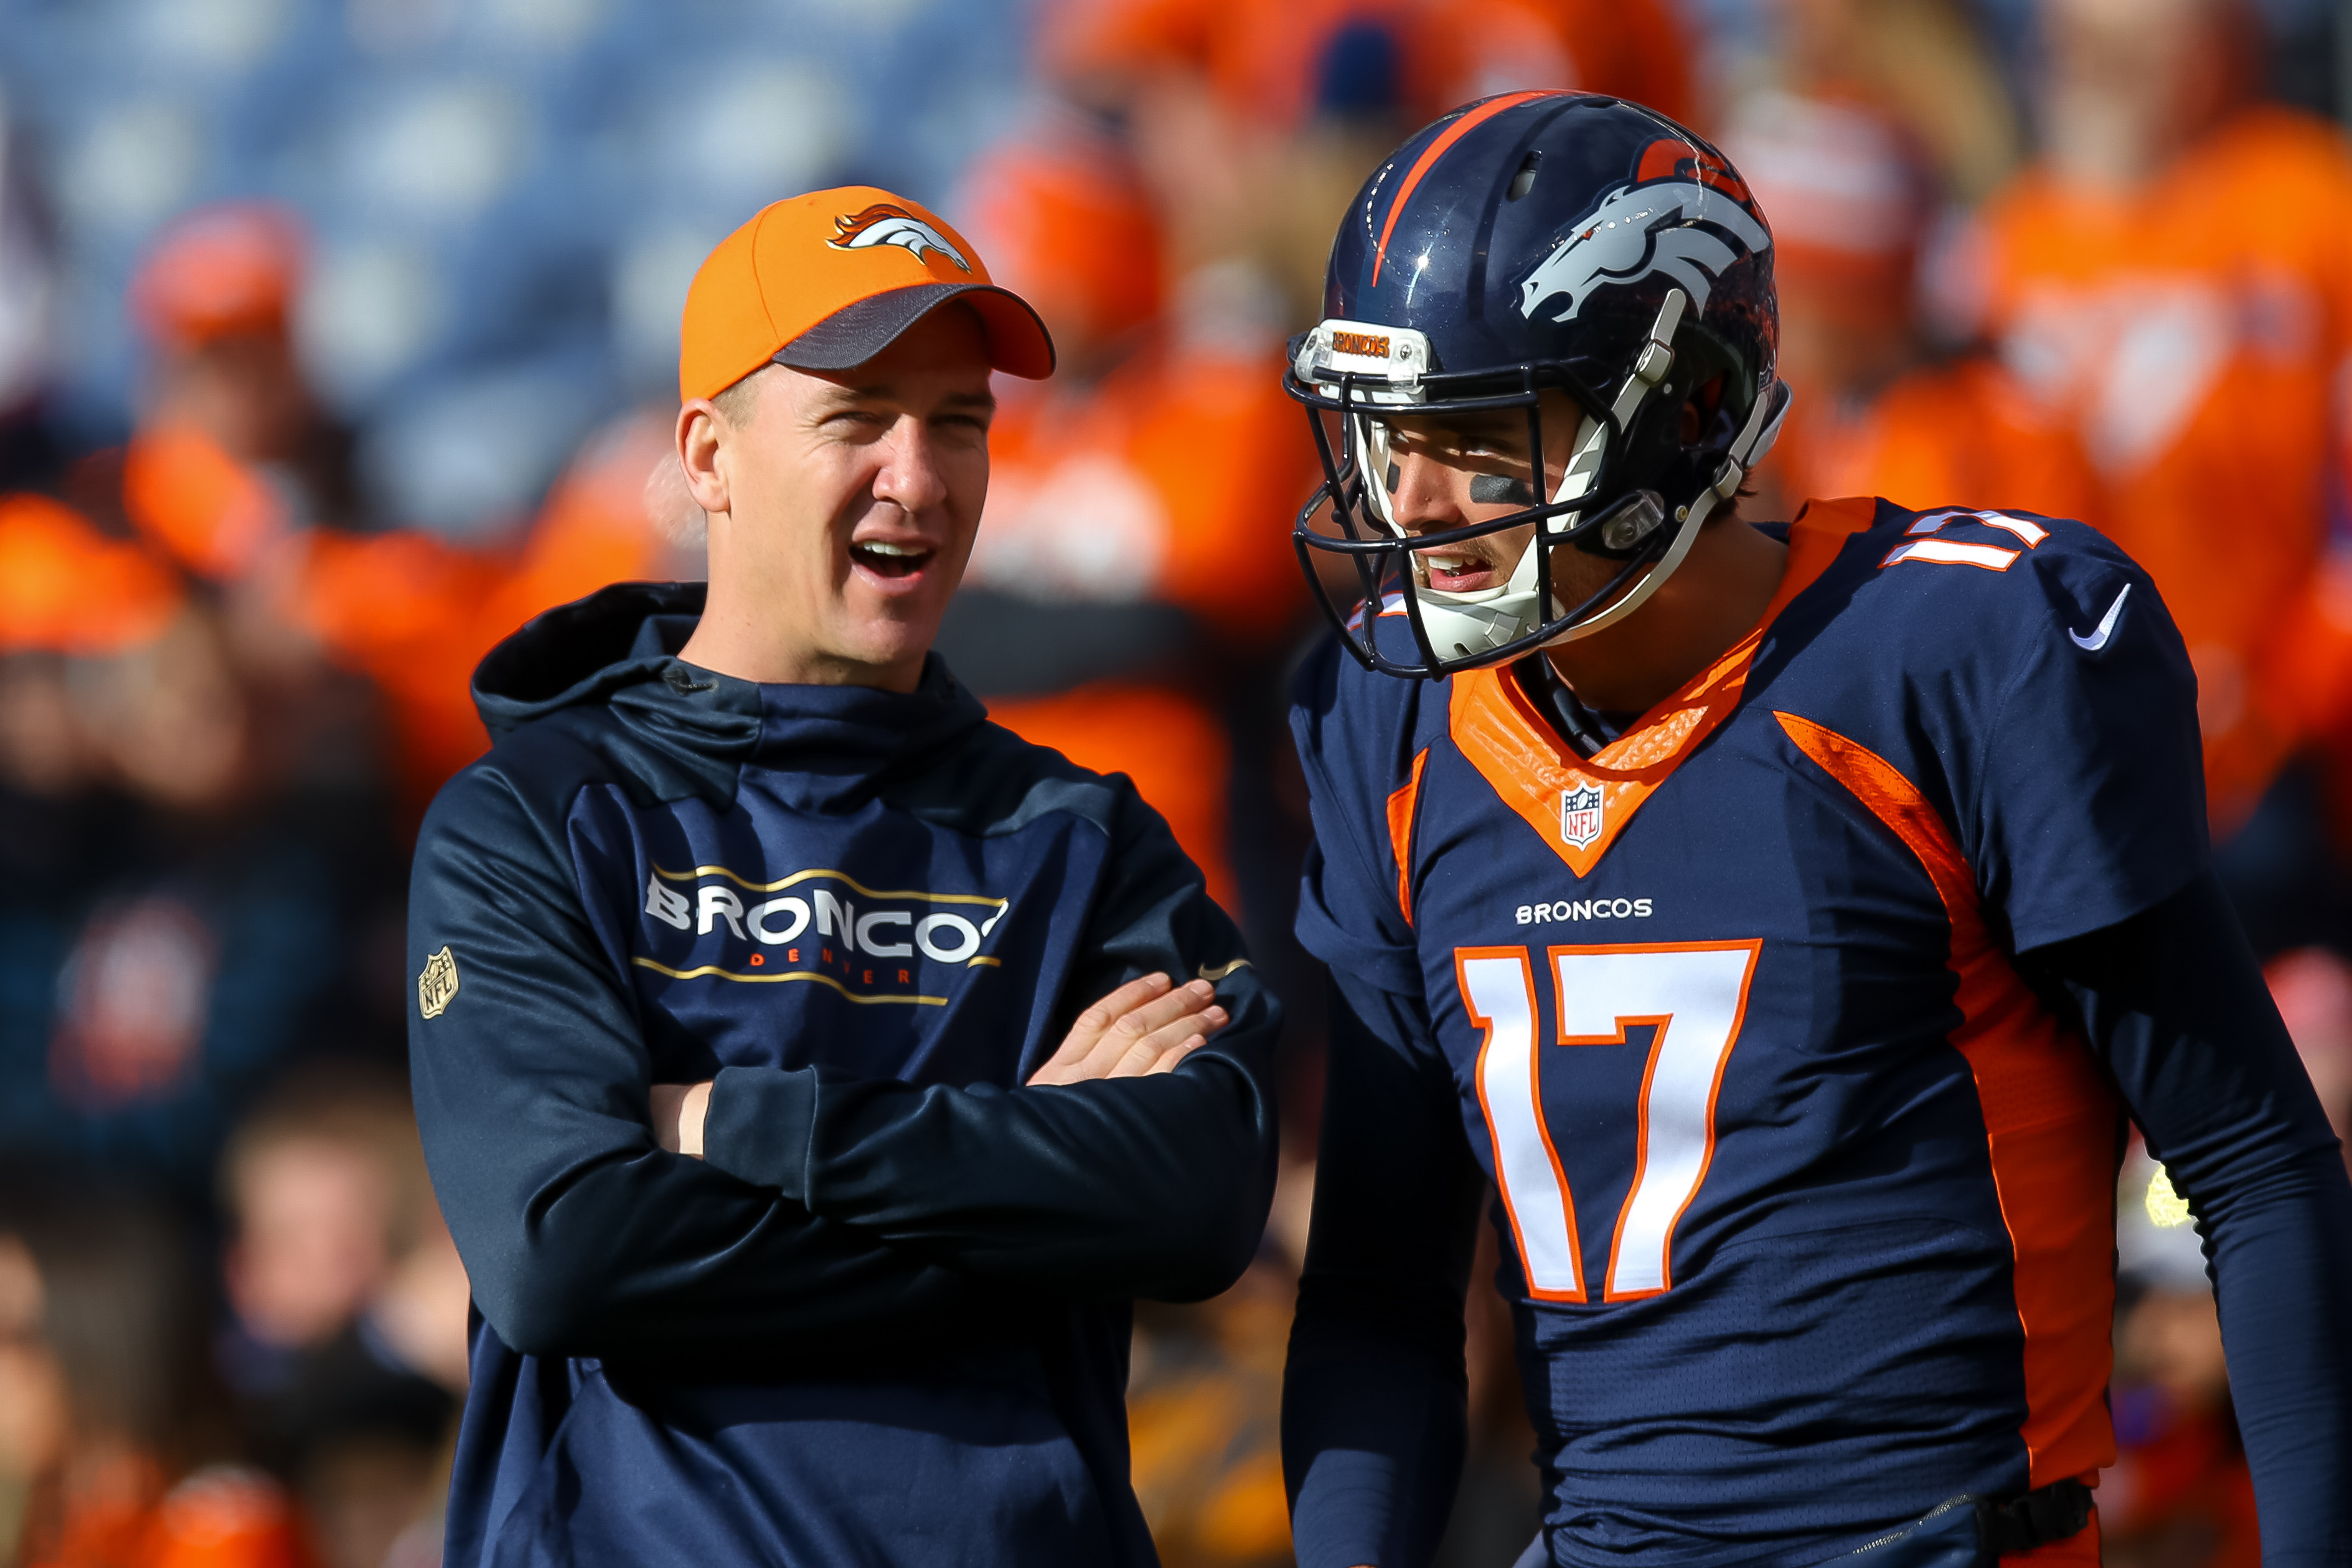 The Game of the Day features Peyton Manning sitting out as Brock Osweiler gets the start against the Steelers. (Getty Images)